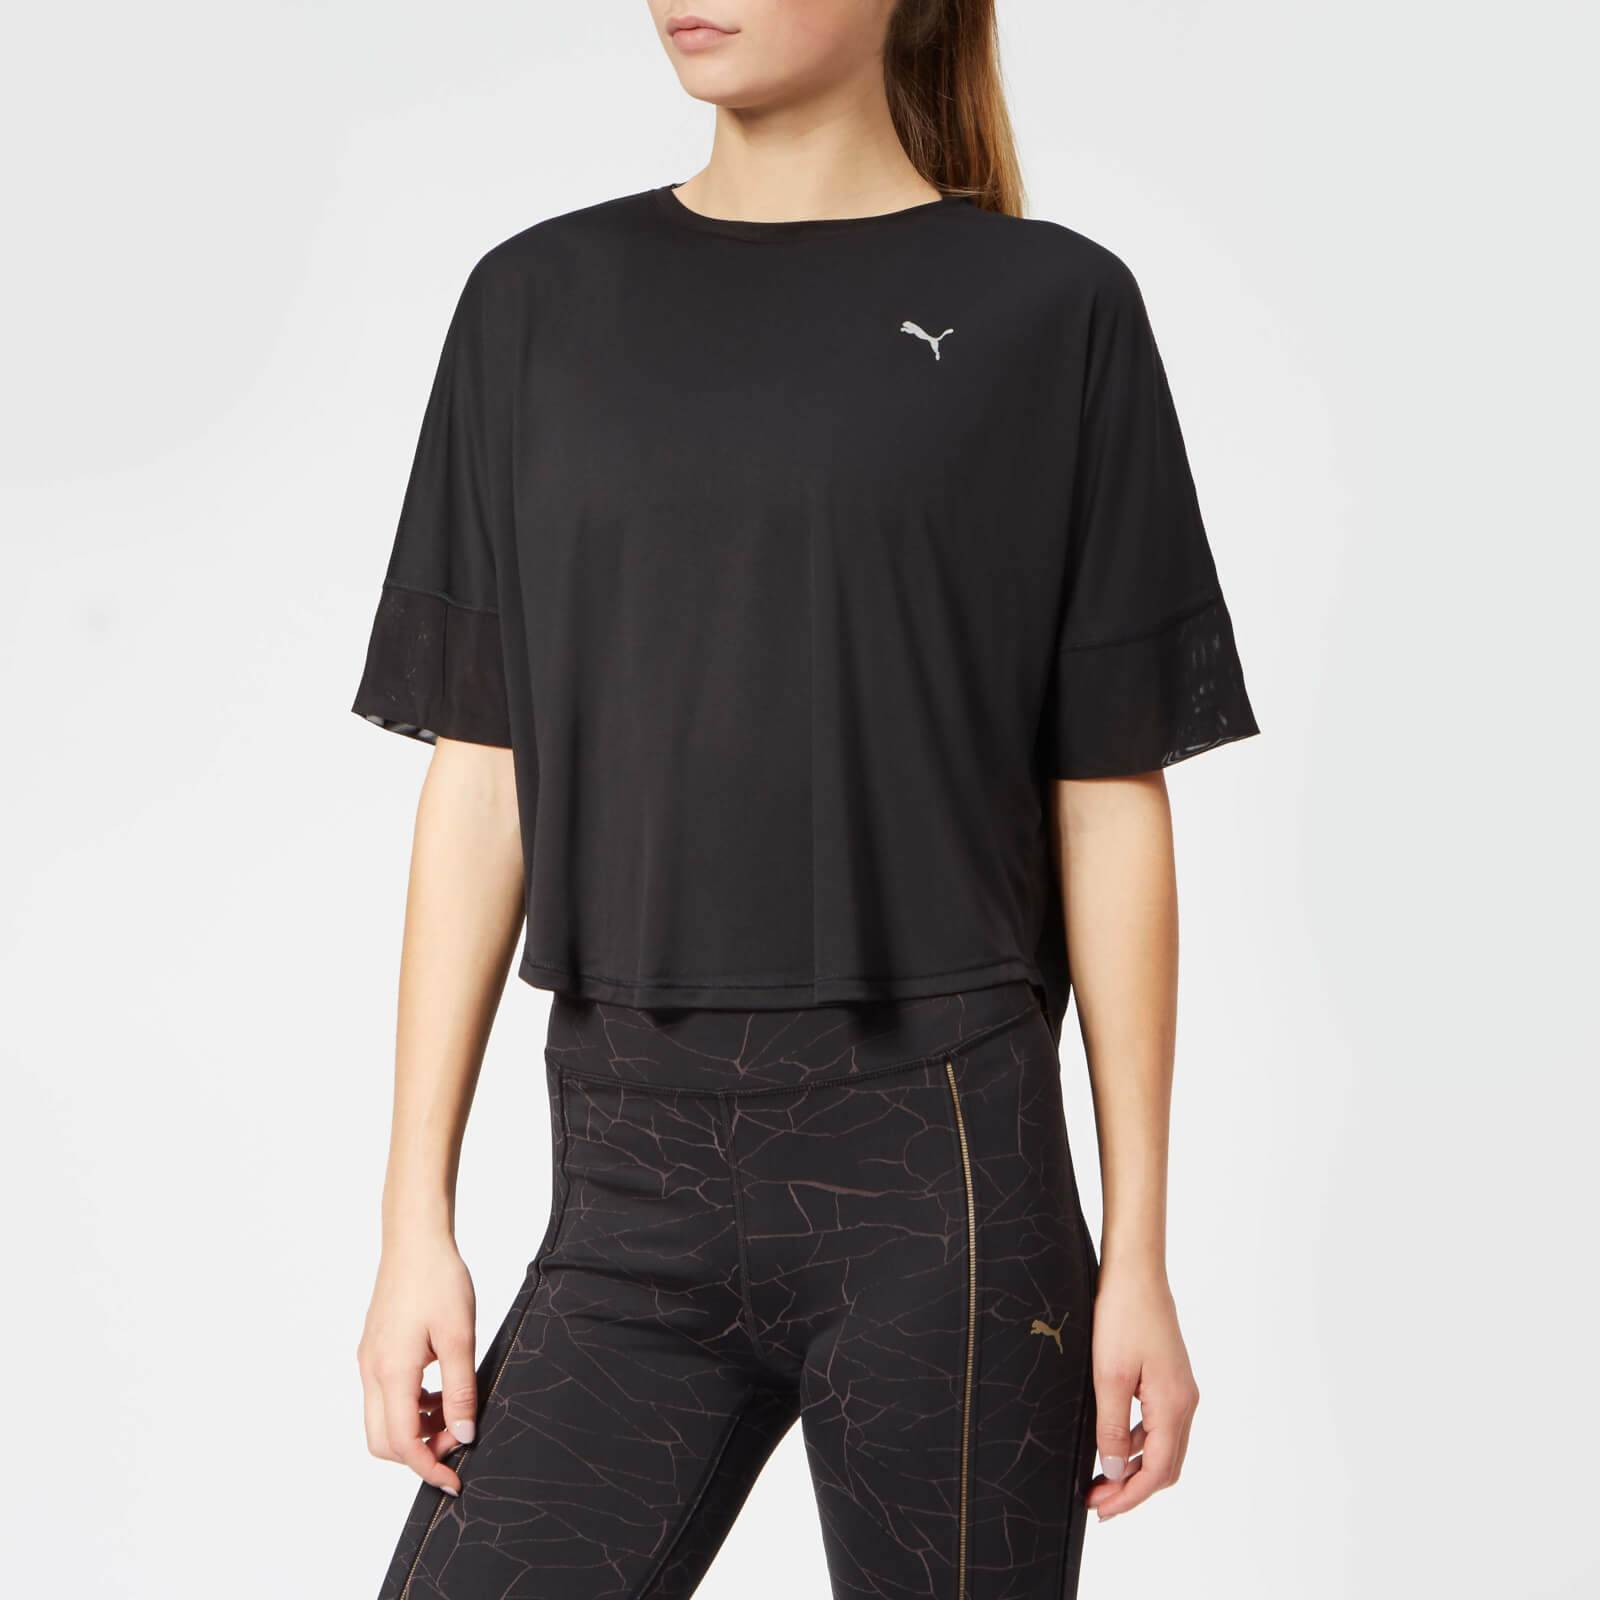 Puma Women's Explosive Short Sleeve T-Shirt - L/UK 14 - Black